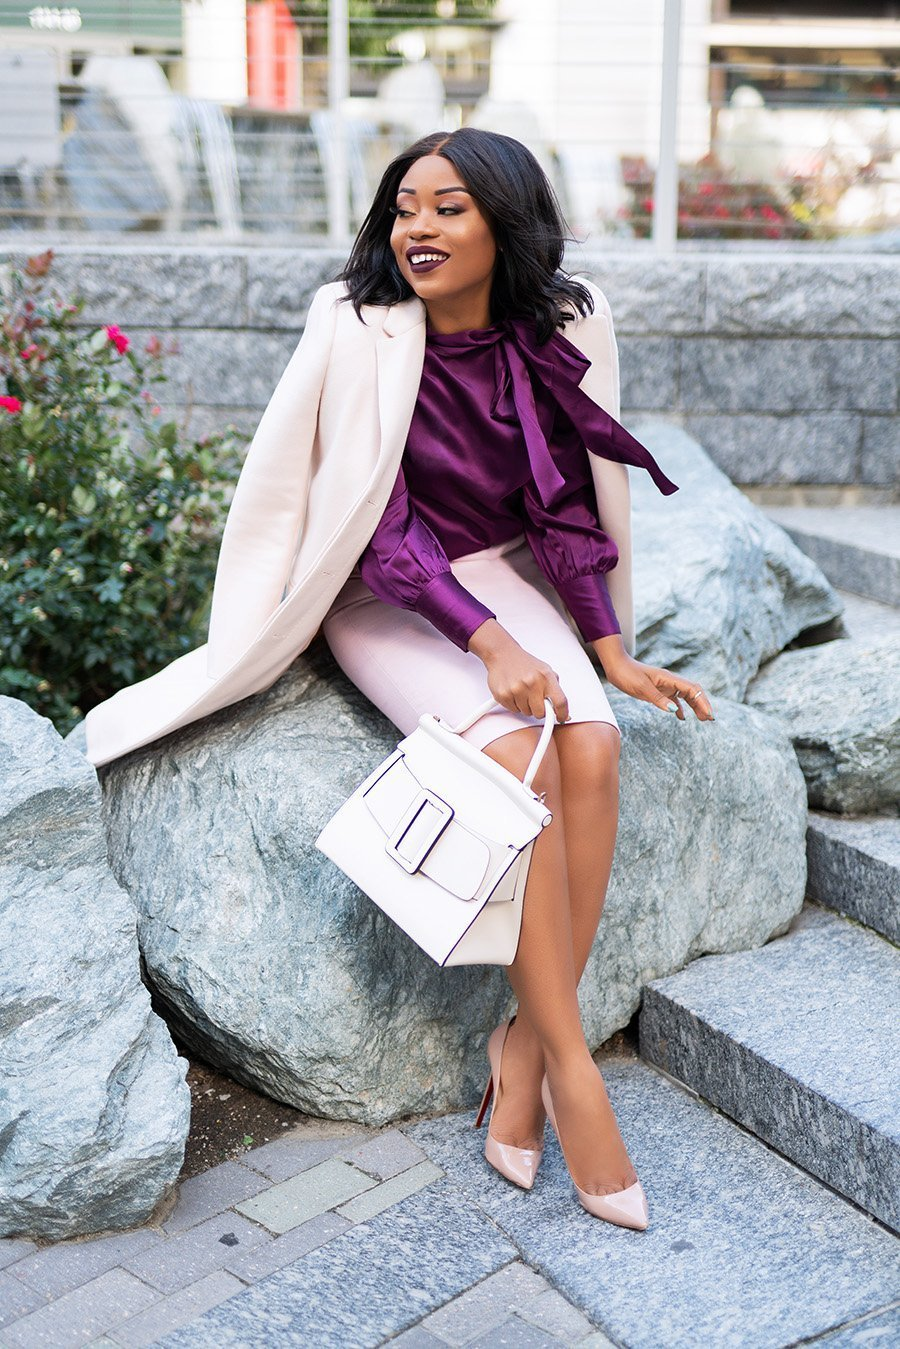 Fashion-blogger-Stella-Eneanya-Adewunmi-of-Jadore-Fashion-shares-her-fall-corporate-style